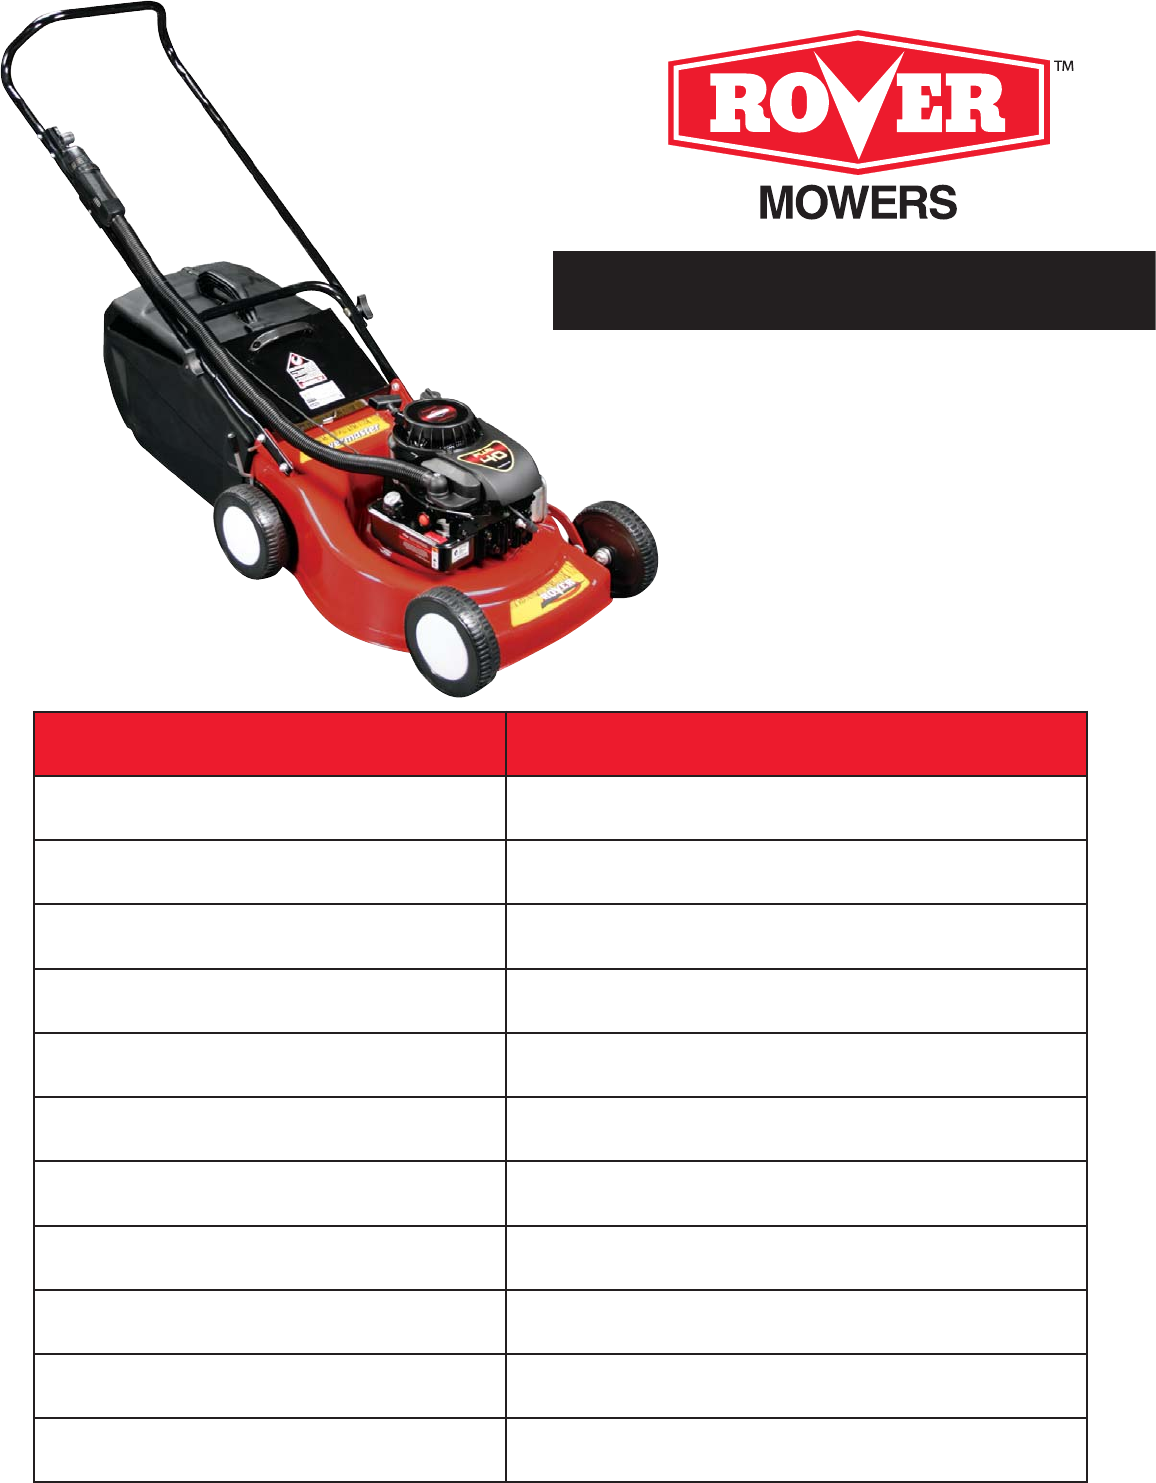 rover lawn mower 11029s user guide manualsonline com rh lawnandgarden manualsonline com rover suzuki lawn mower manual rover easystart lawn mower manual